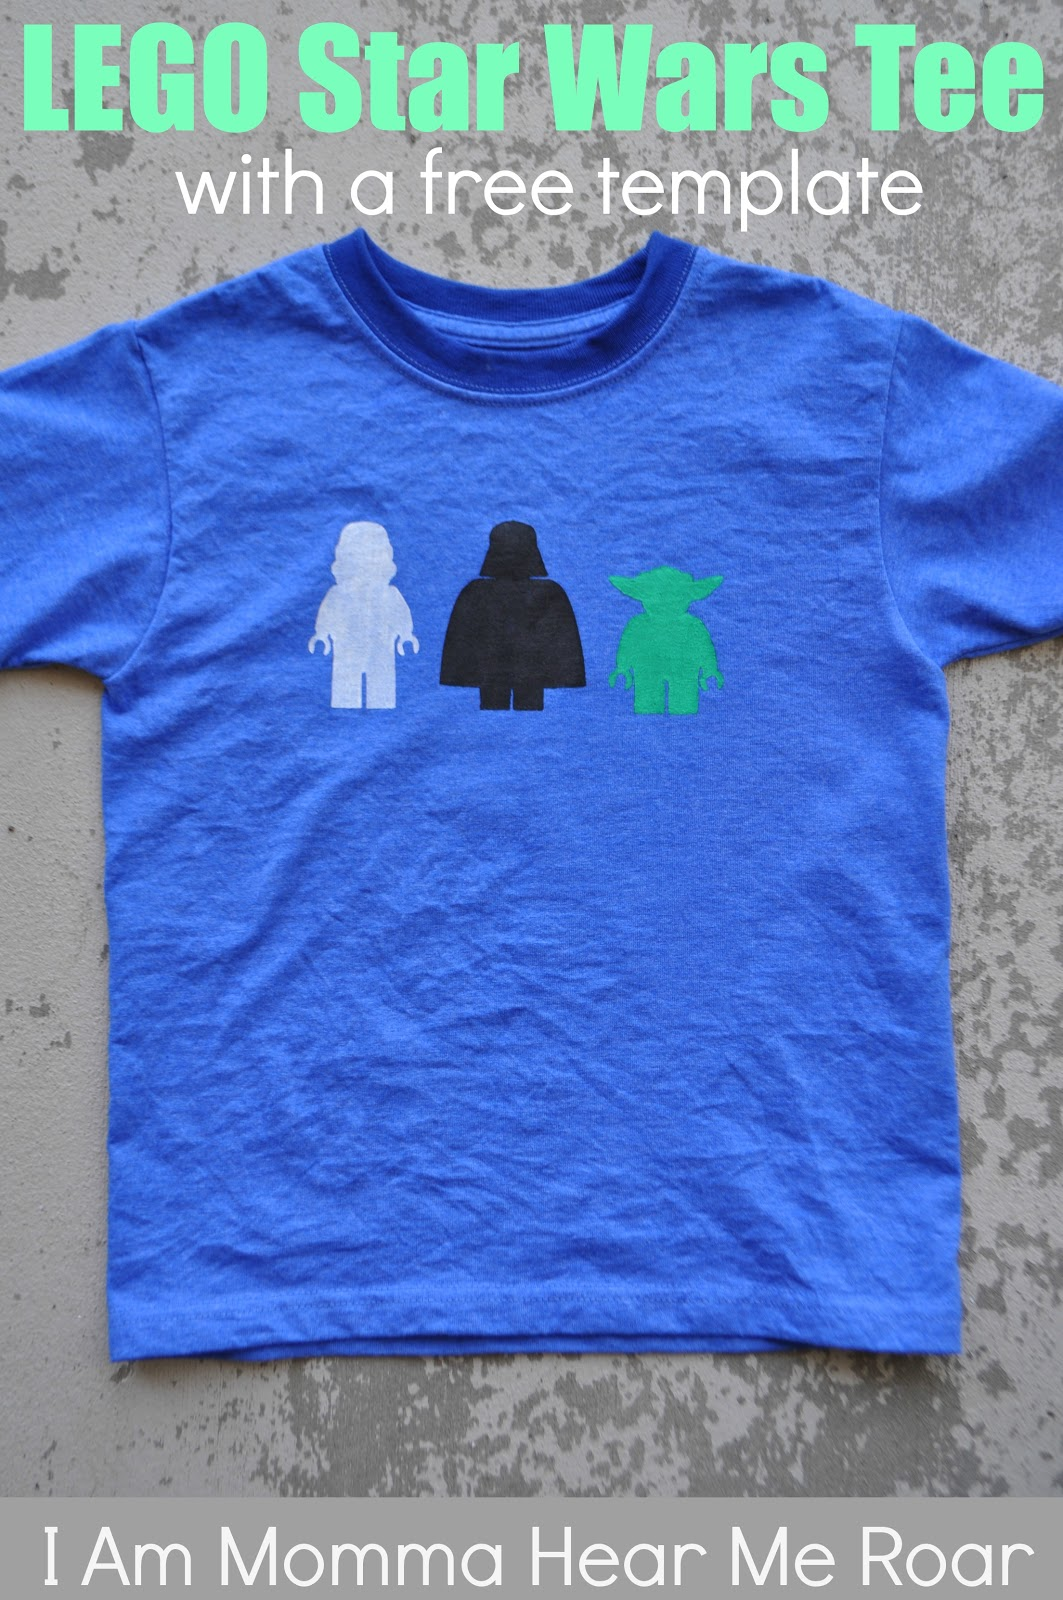 I Am Momma - Hear Me Roar: Lego Star Wars Tee (with a free ...